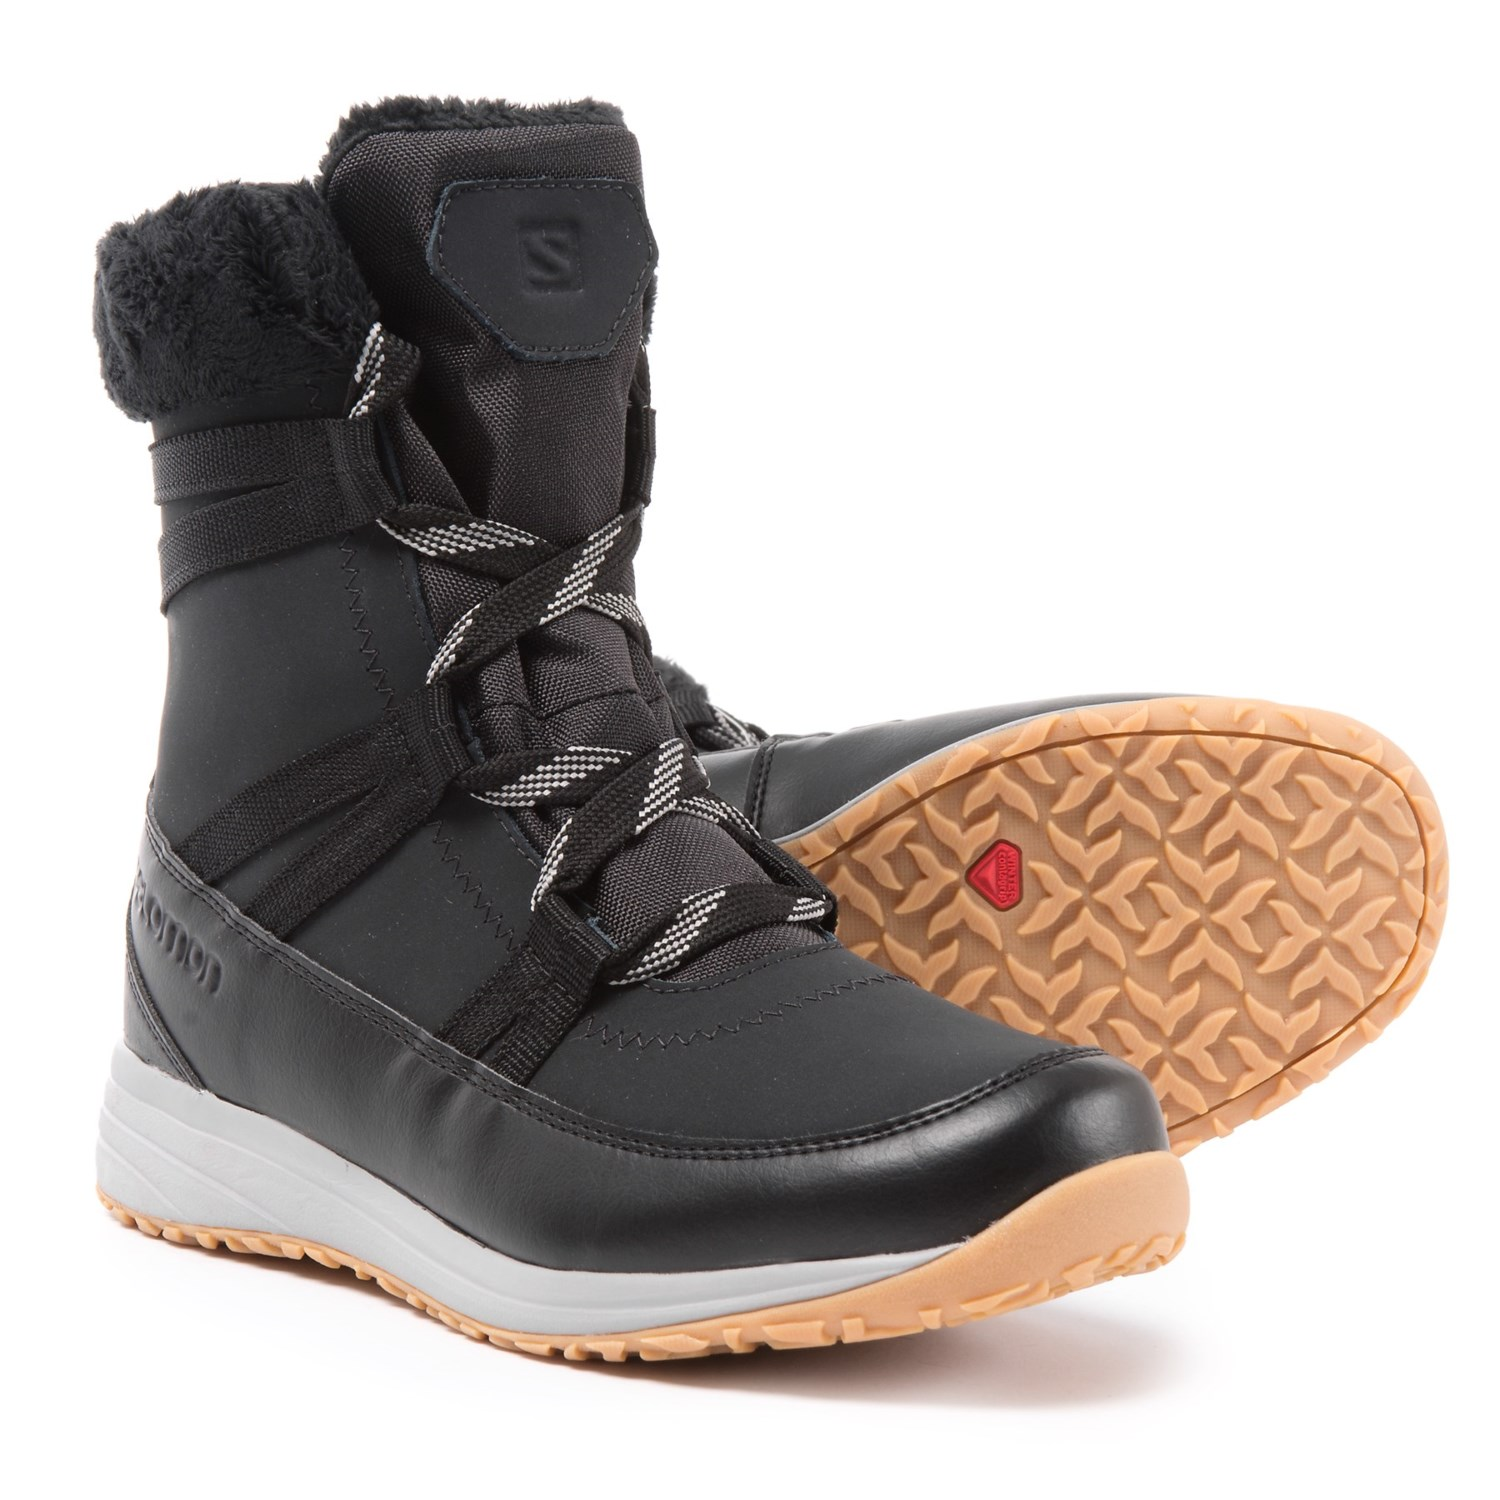 efbde2ef5 Salomon Heika LTR CS Winter Boots - Waterproof, Insulated (For Women)